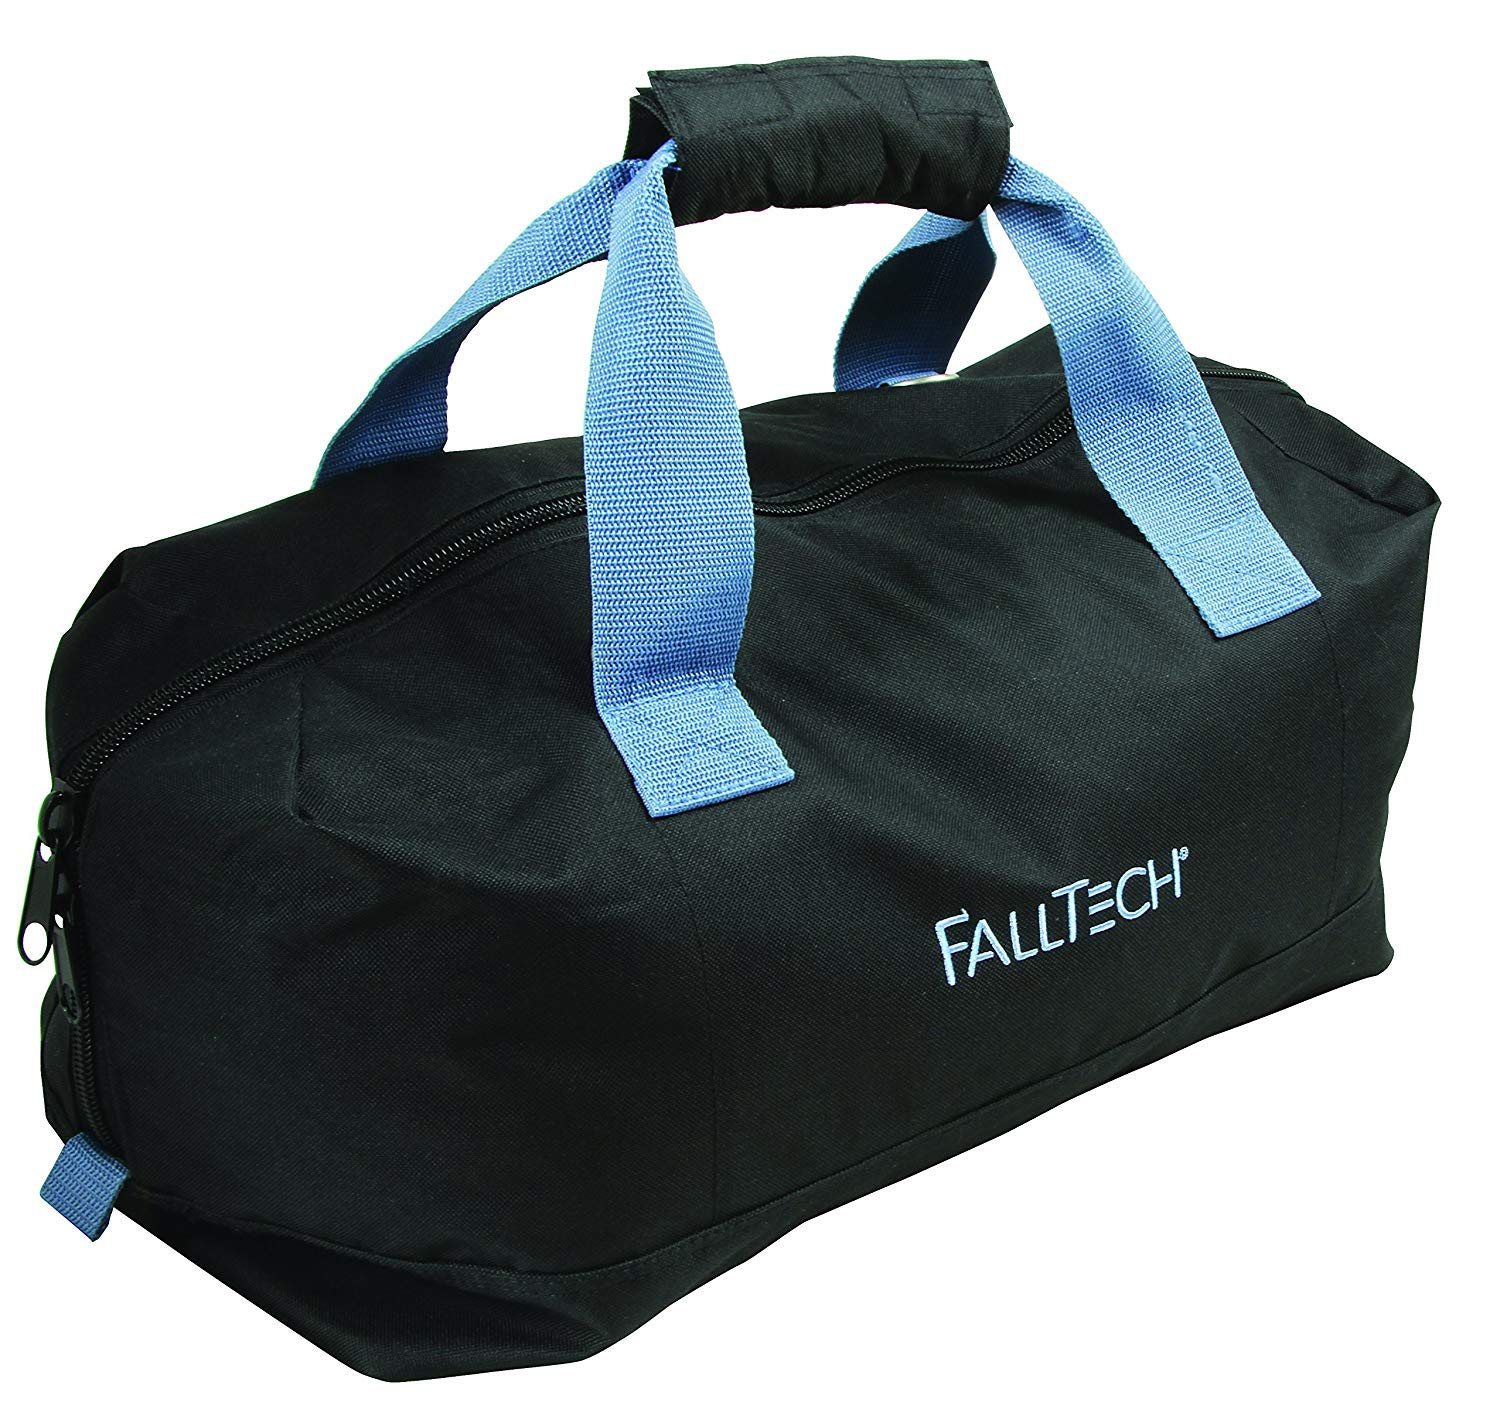 FallTech 5007LP Storage Large Gear Bag with Shoulder Strap and Carry Handles, 10'' x 18'', Black